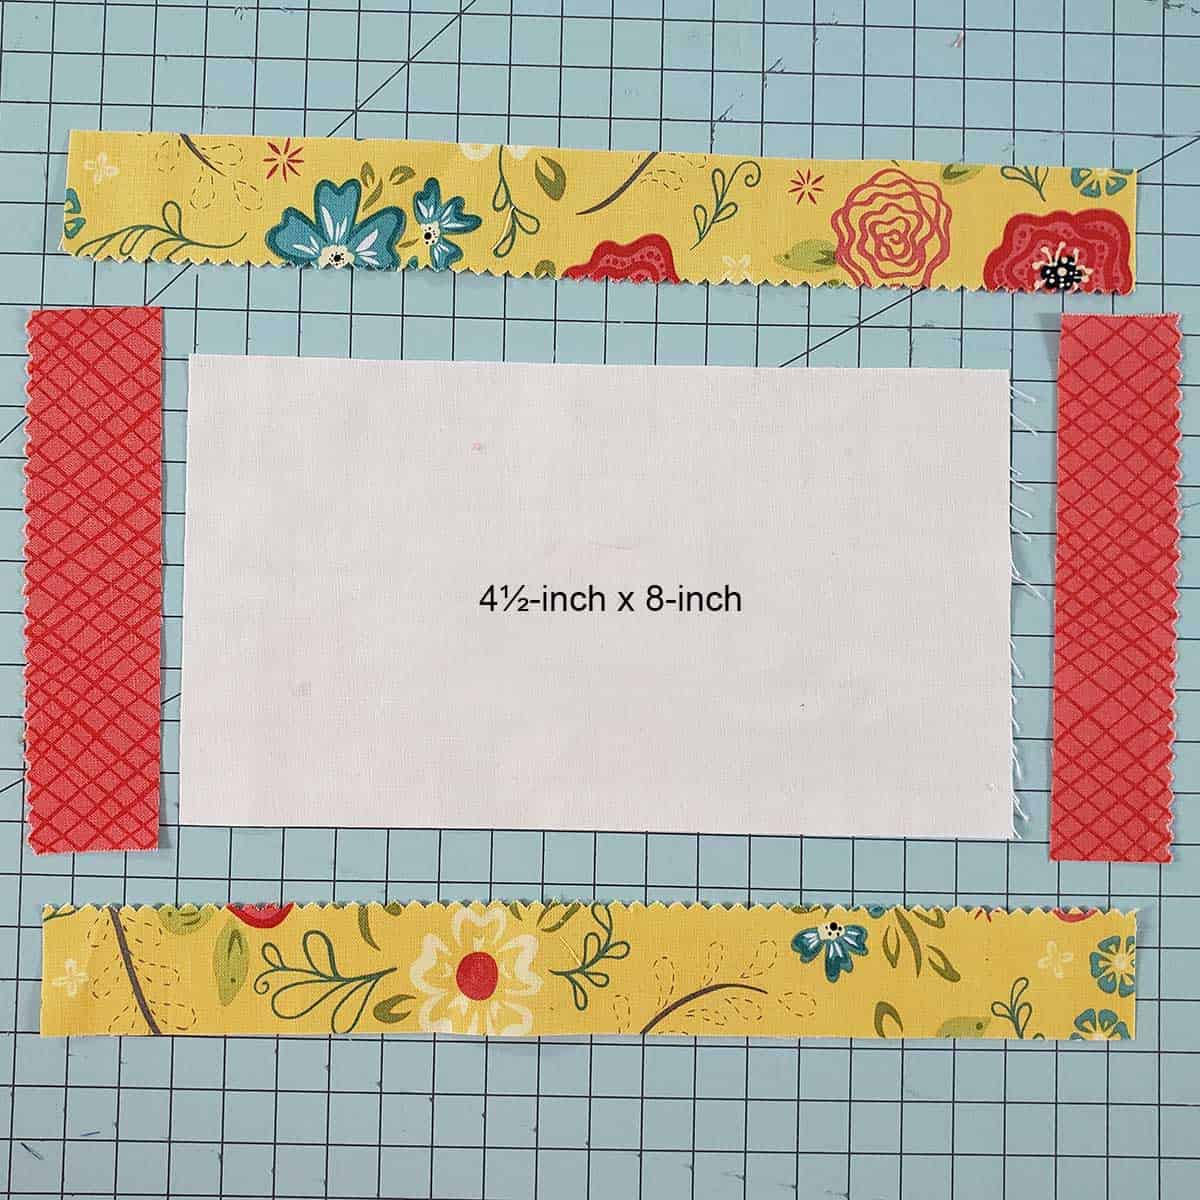 Using plain fabric in the center for the Courthouse Rows placemats